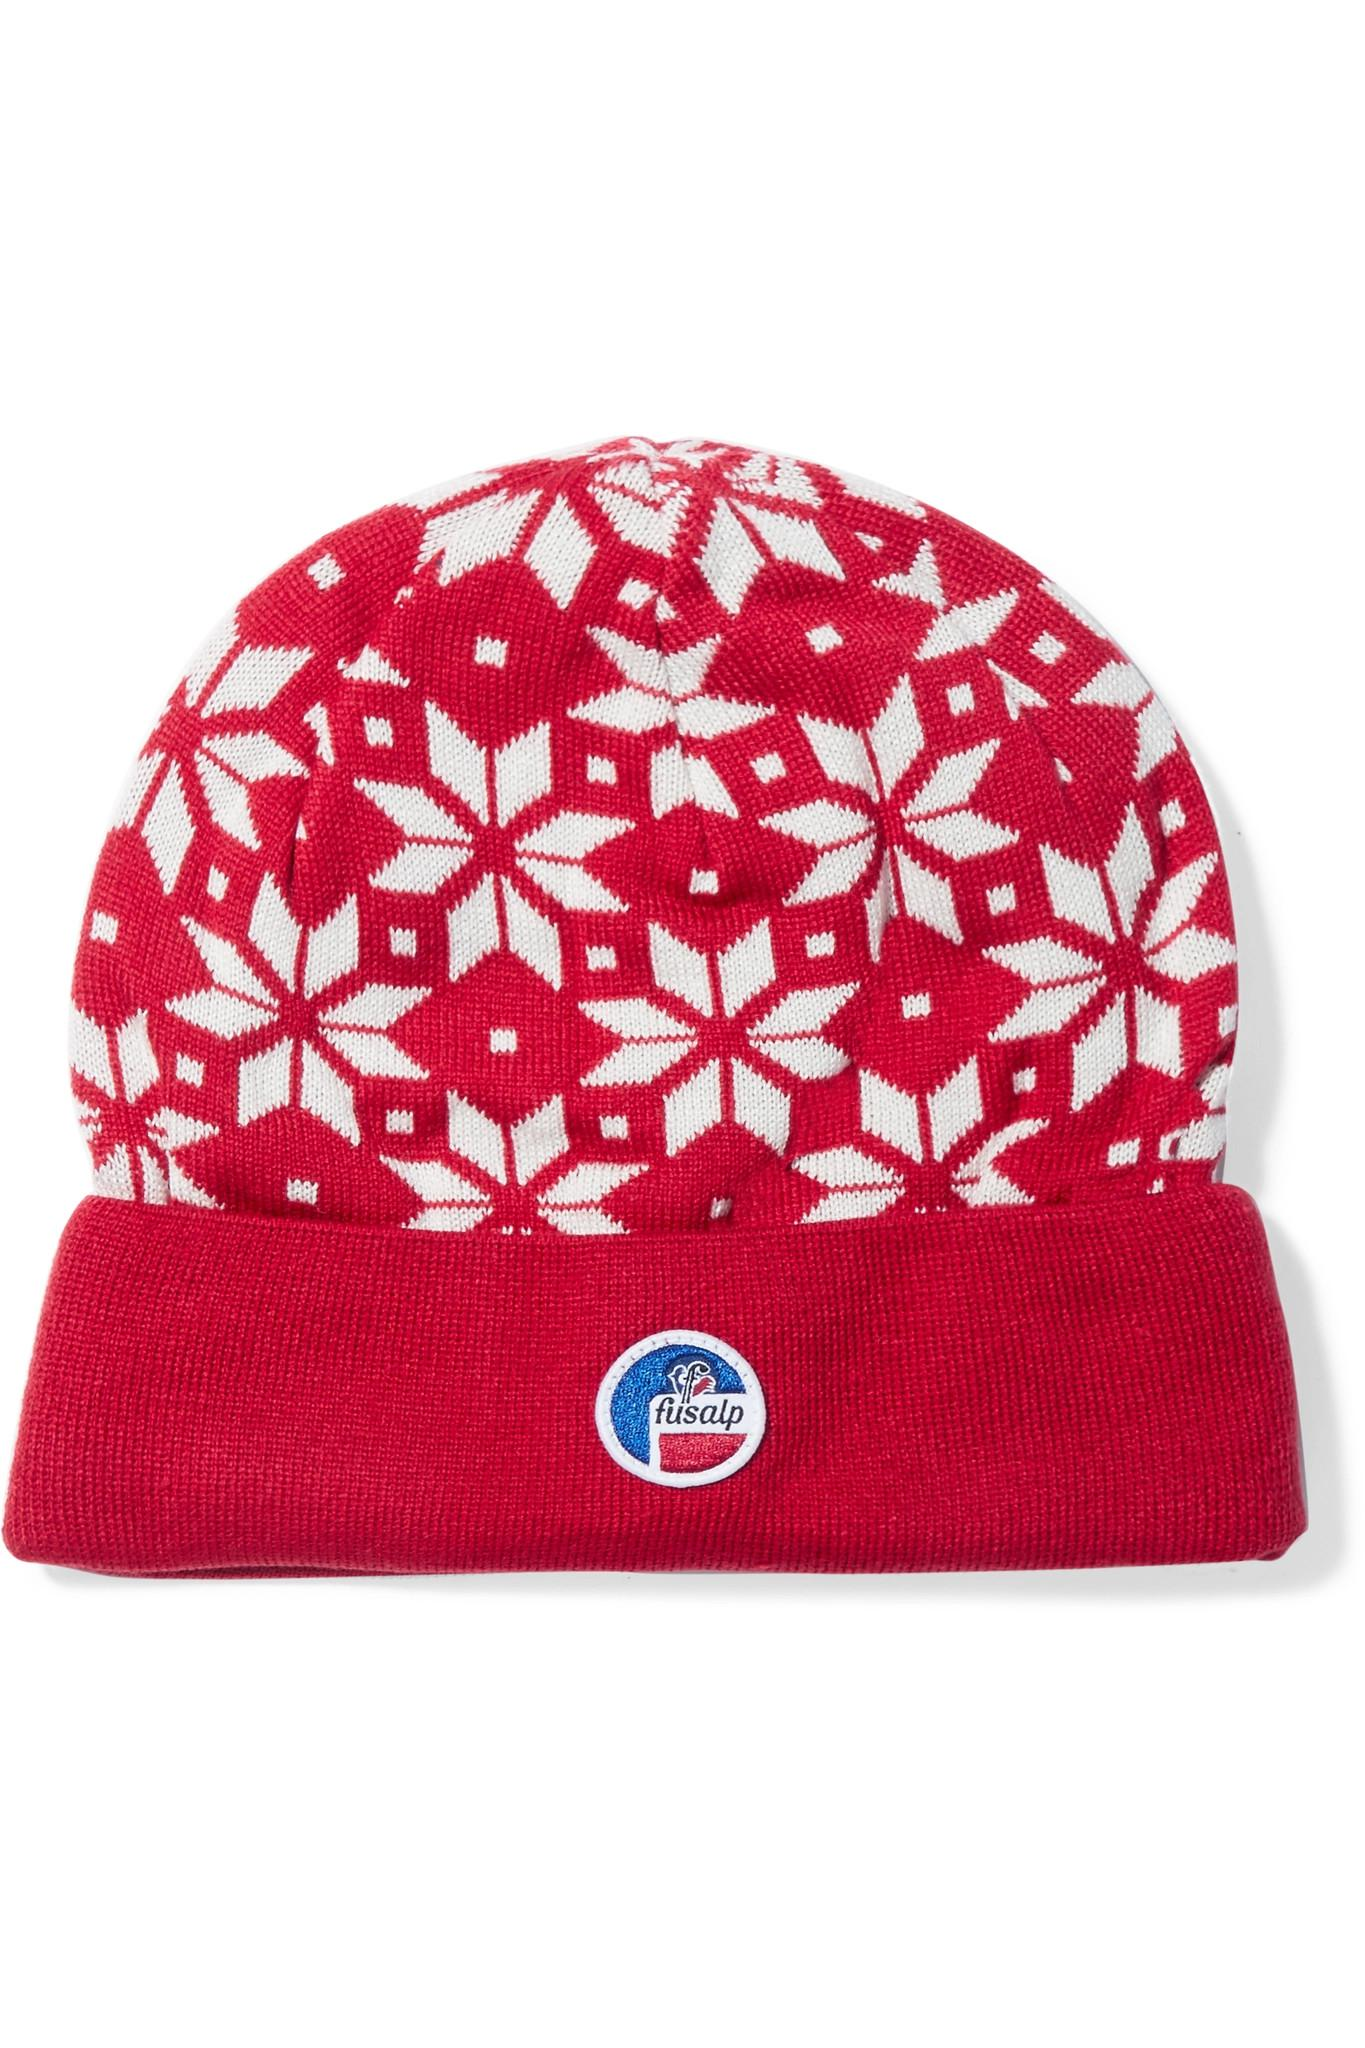 Snowflake Intarsia Knitted Beanie - Red Fusalp